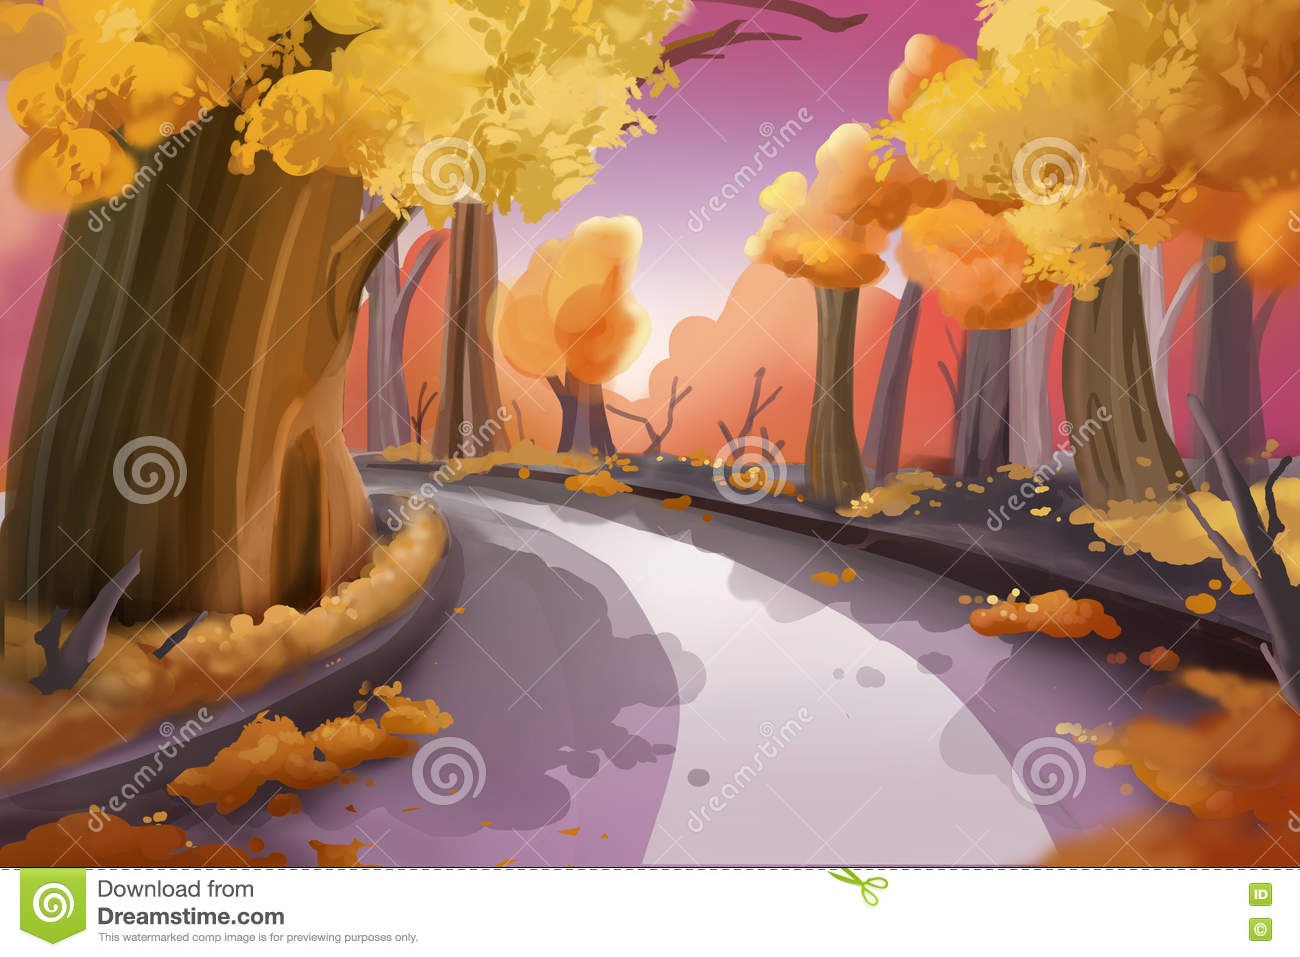 Game with watercolor - Fantastic Watercolor Style Painting Forest Road Royalty Free Stock Images